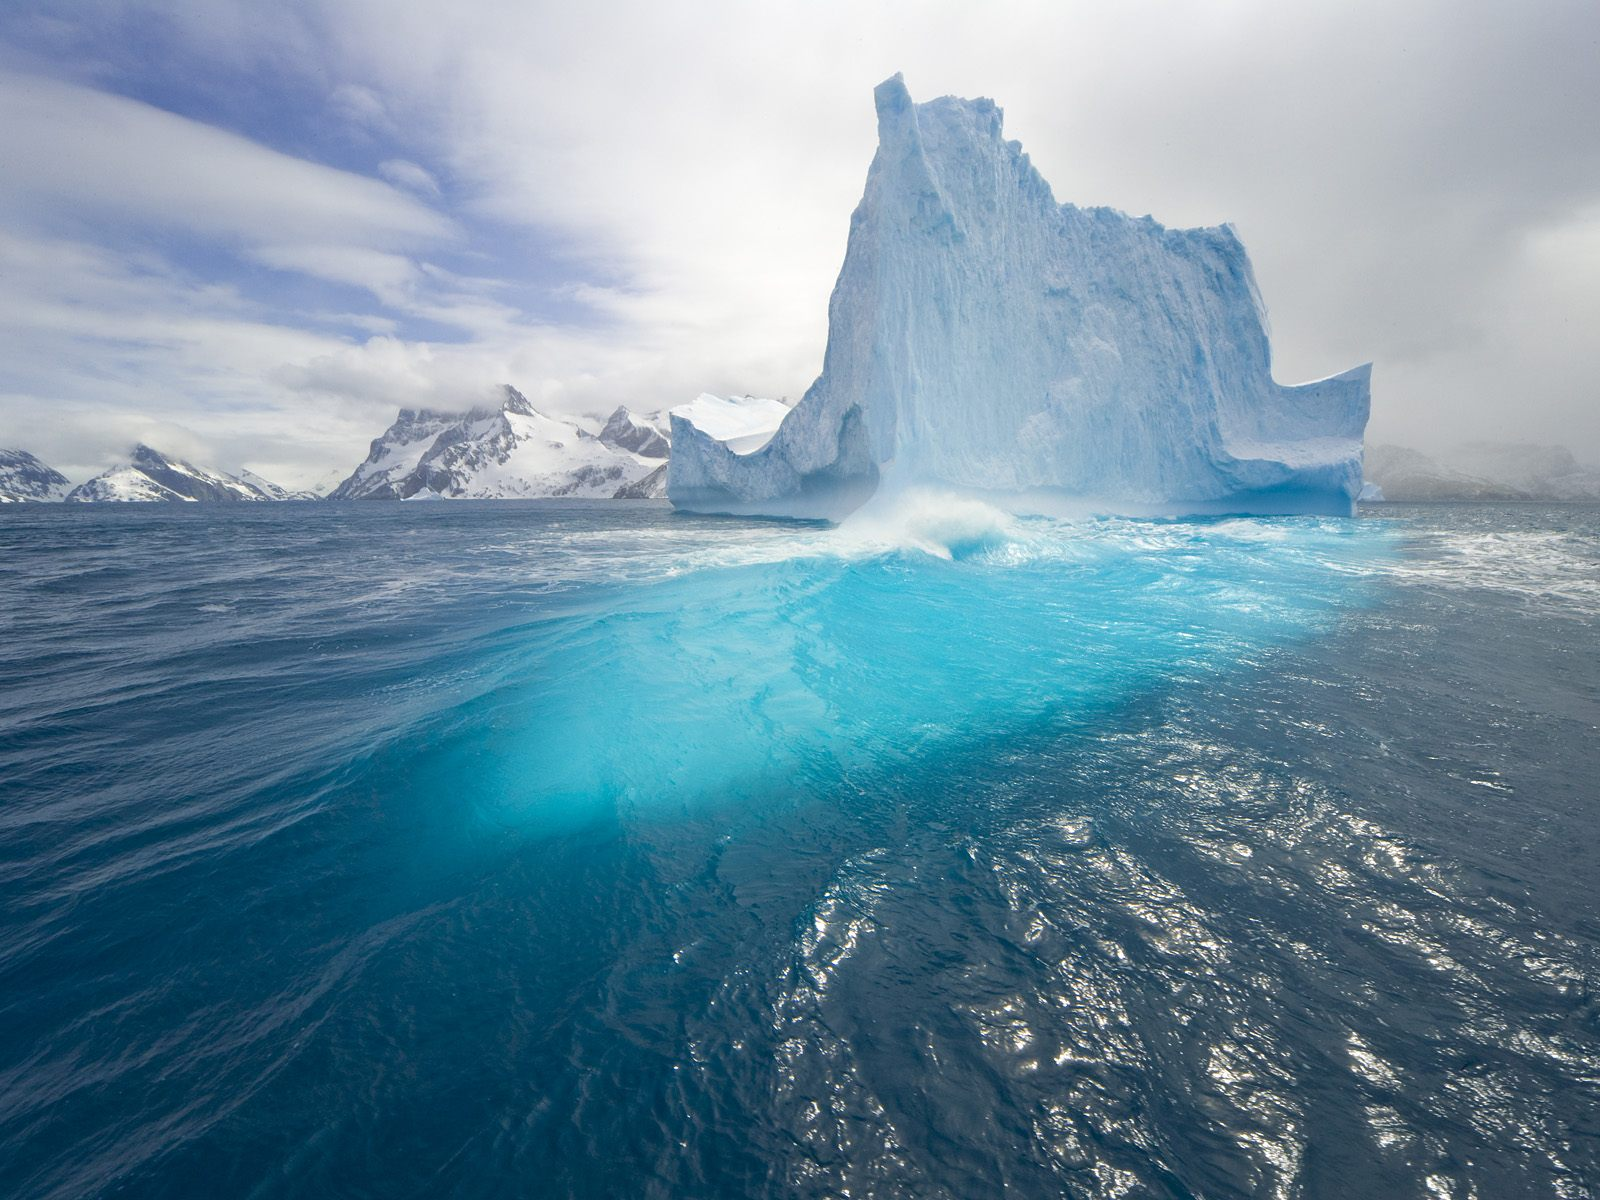 Blue Tall Iceberg 1536.49 Kb